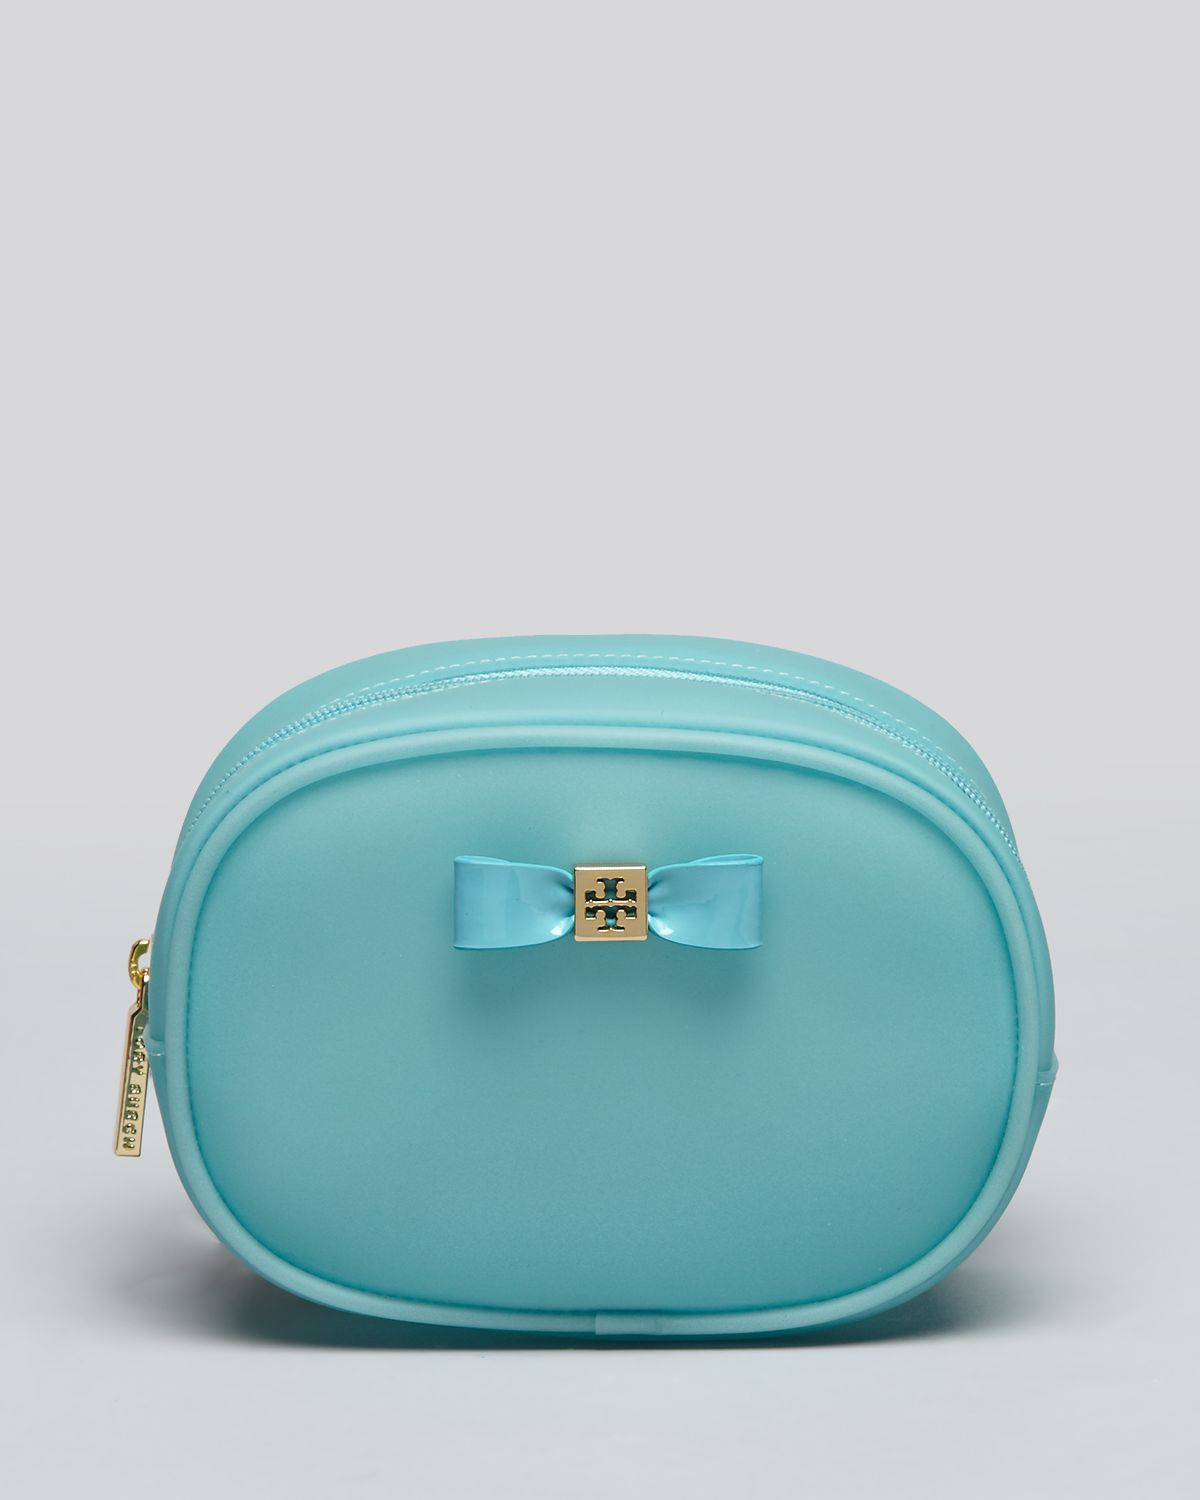 8d3b0761a45 Lyst - Tory Burch Cosmetic Case Bow Jelly Small Classic in Green